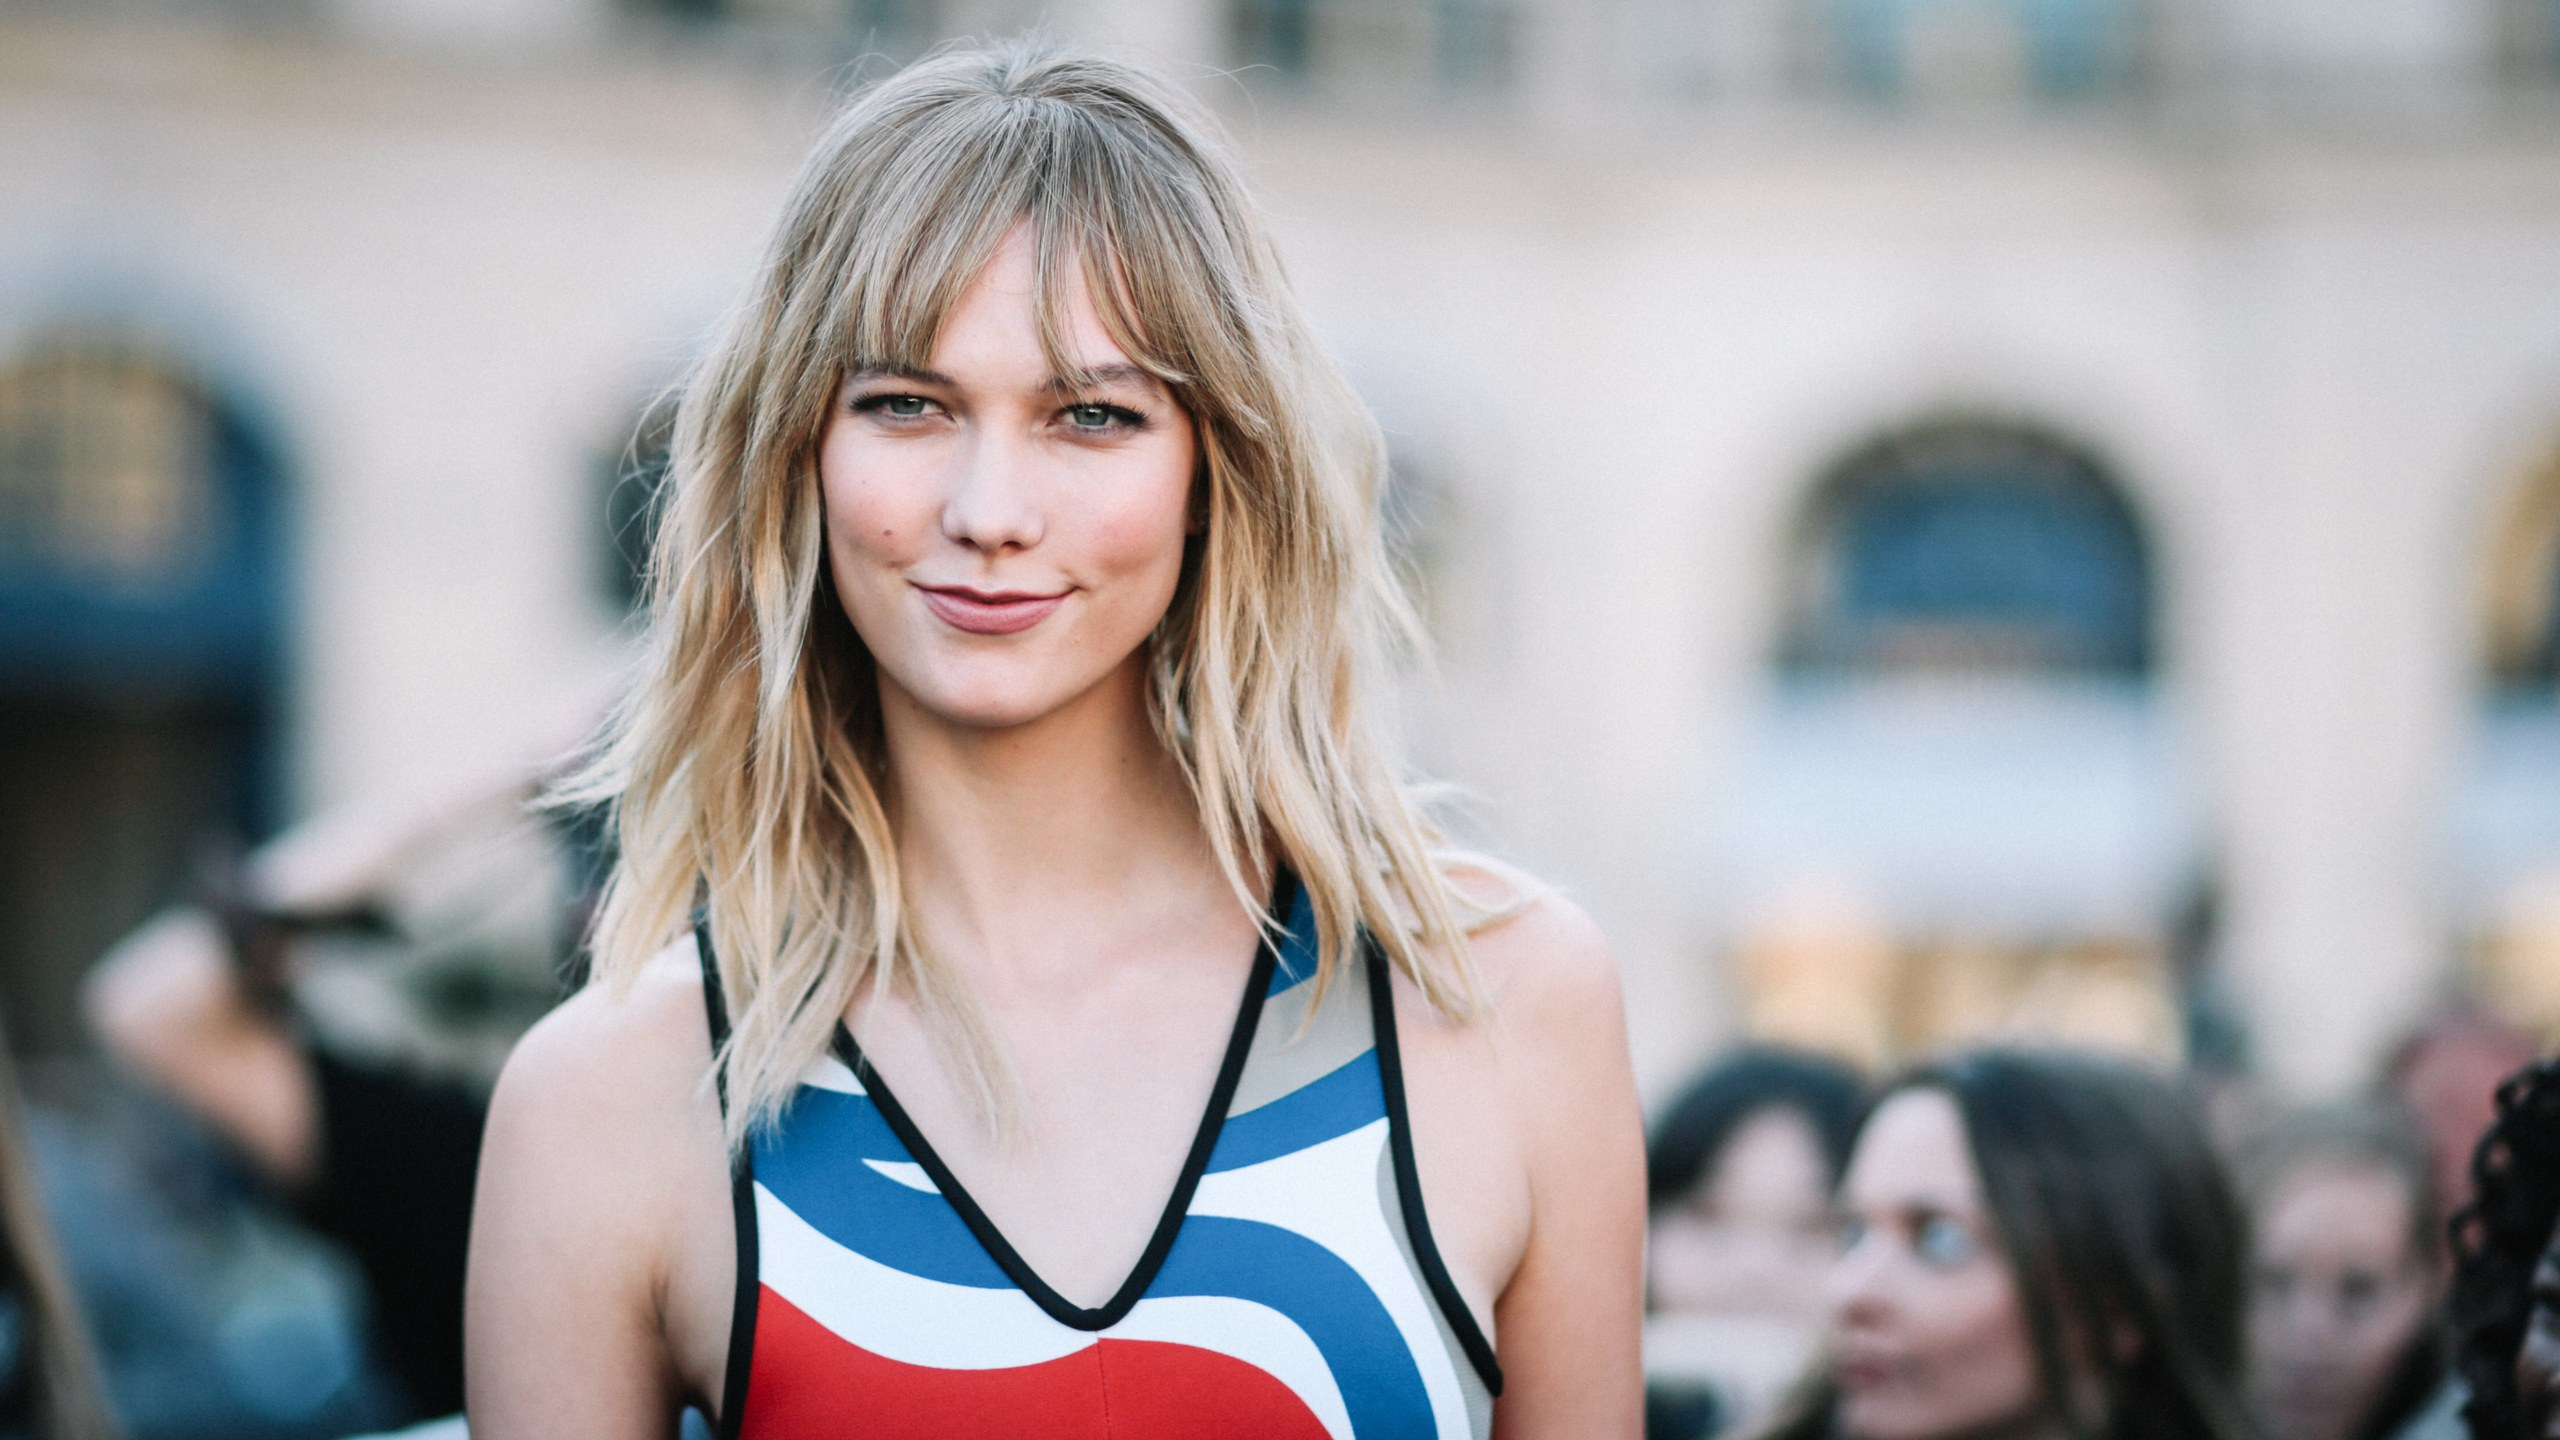 Sweet Model Karlie Kloss - Karlie Kloss Net Worth, Pics, Wallpapers, Career and Biography